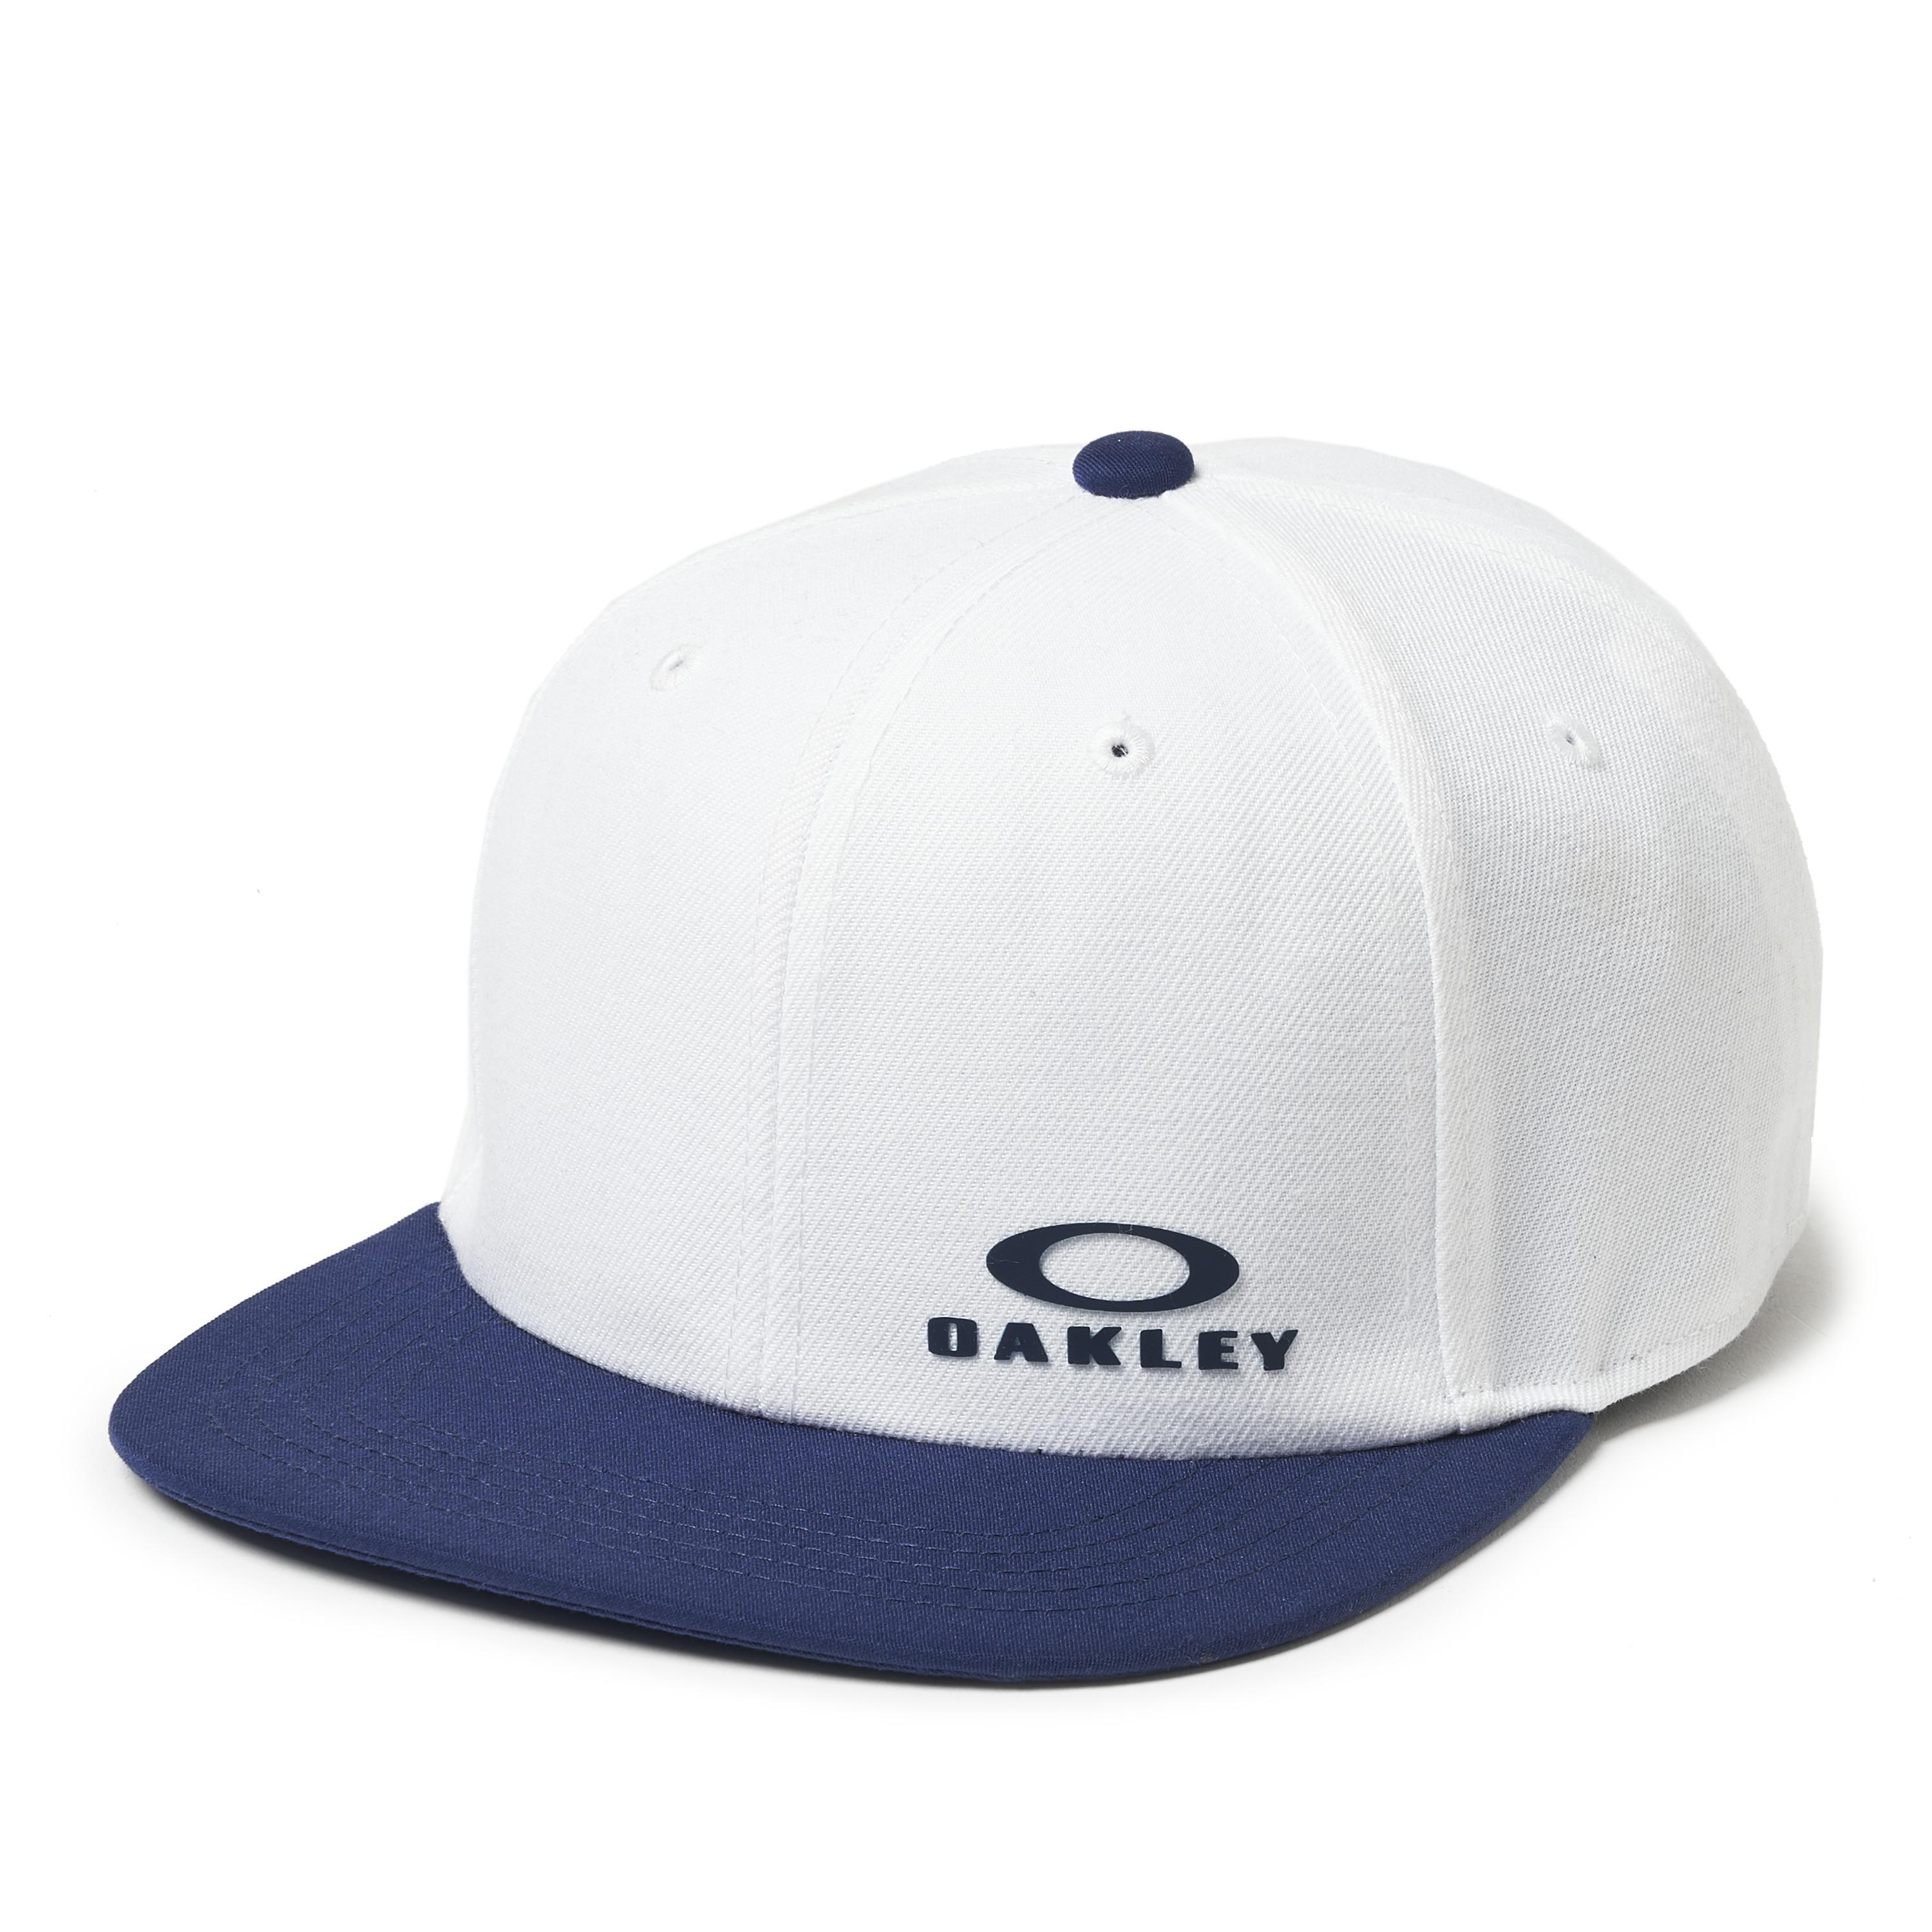 8416df6660775 Lyst - Oakley Bg Snap Back Cap in White for Men